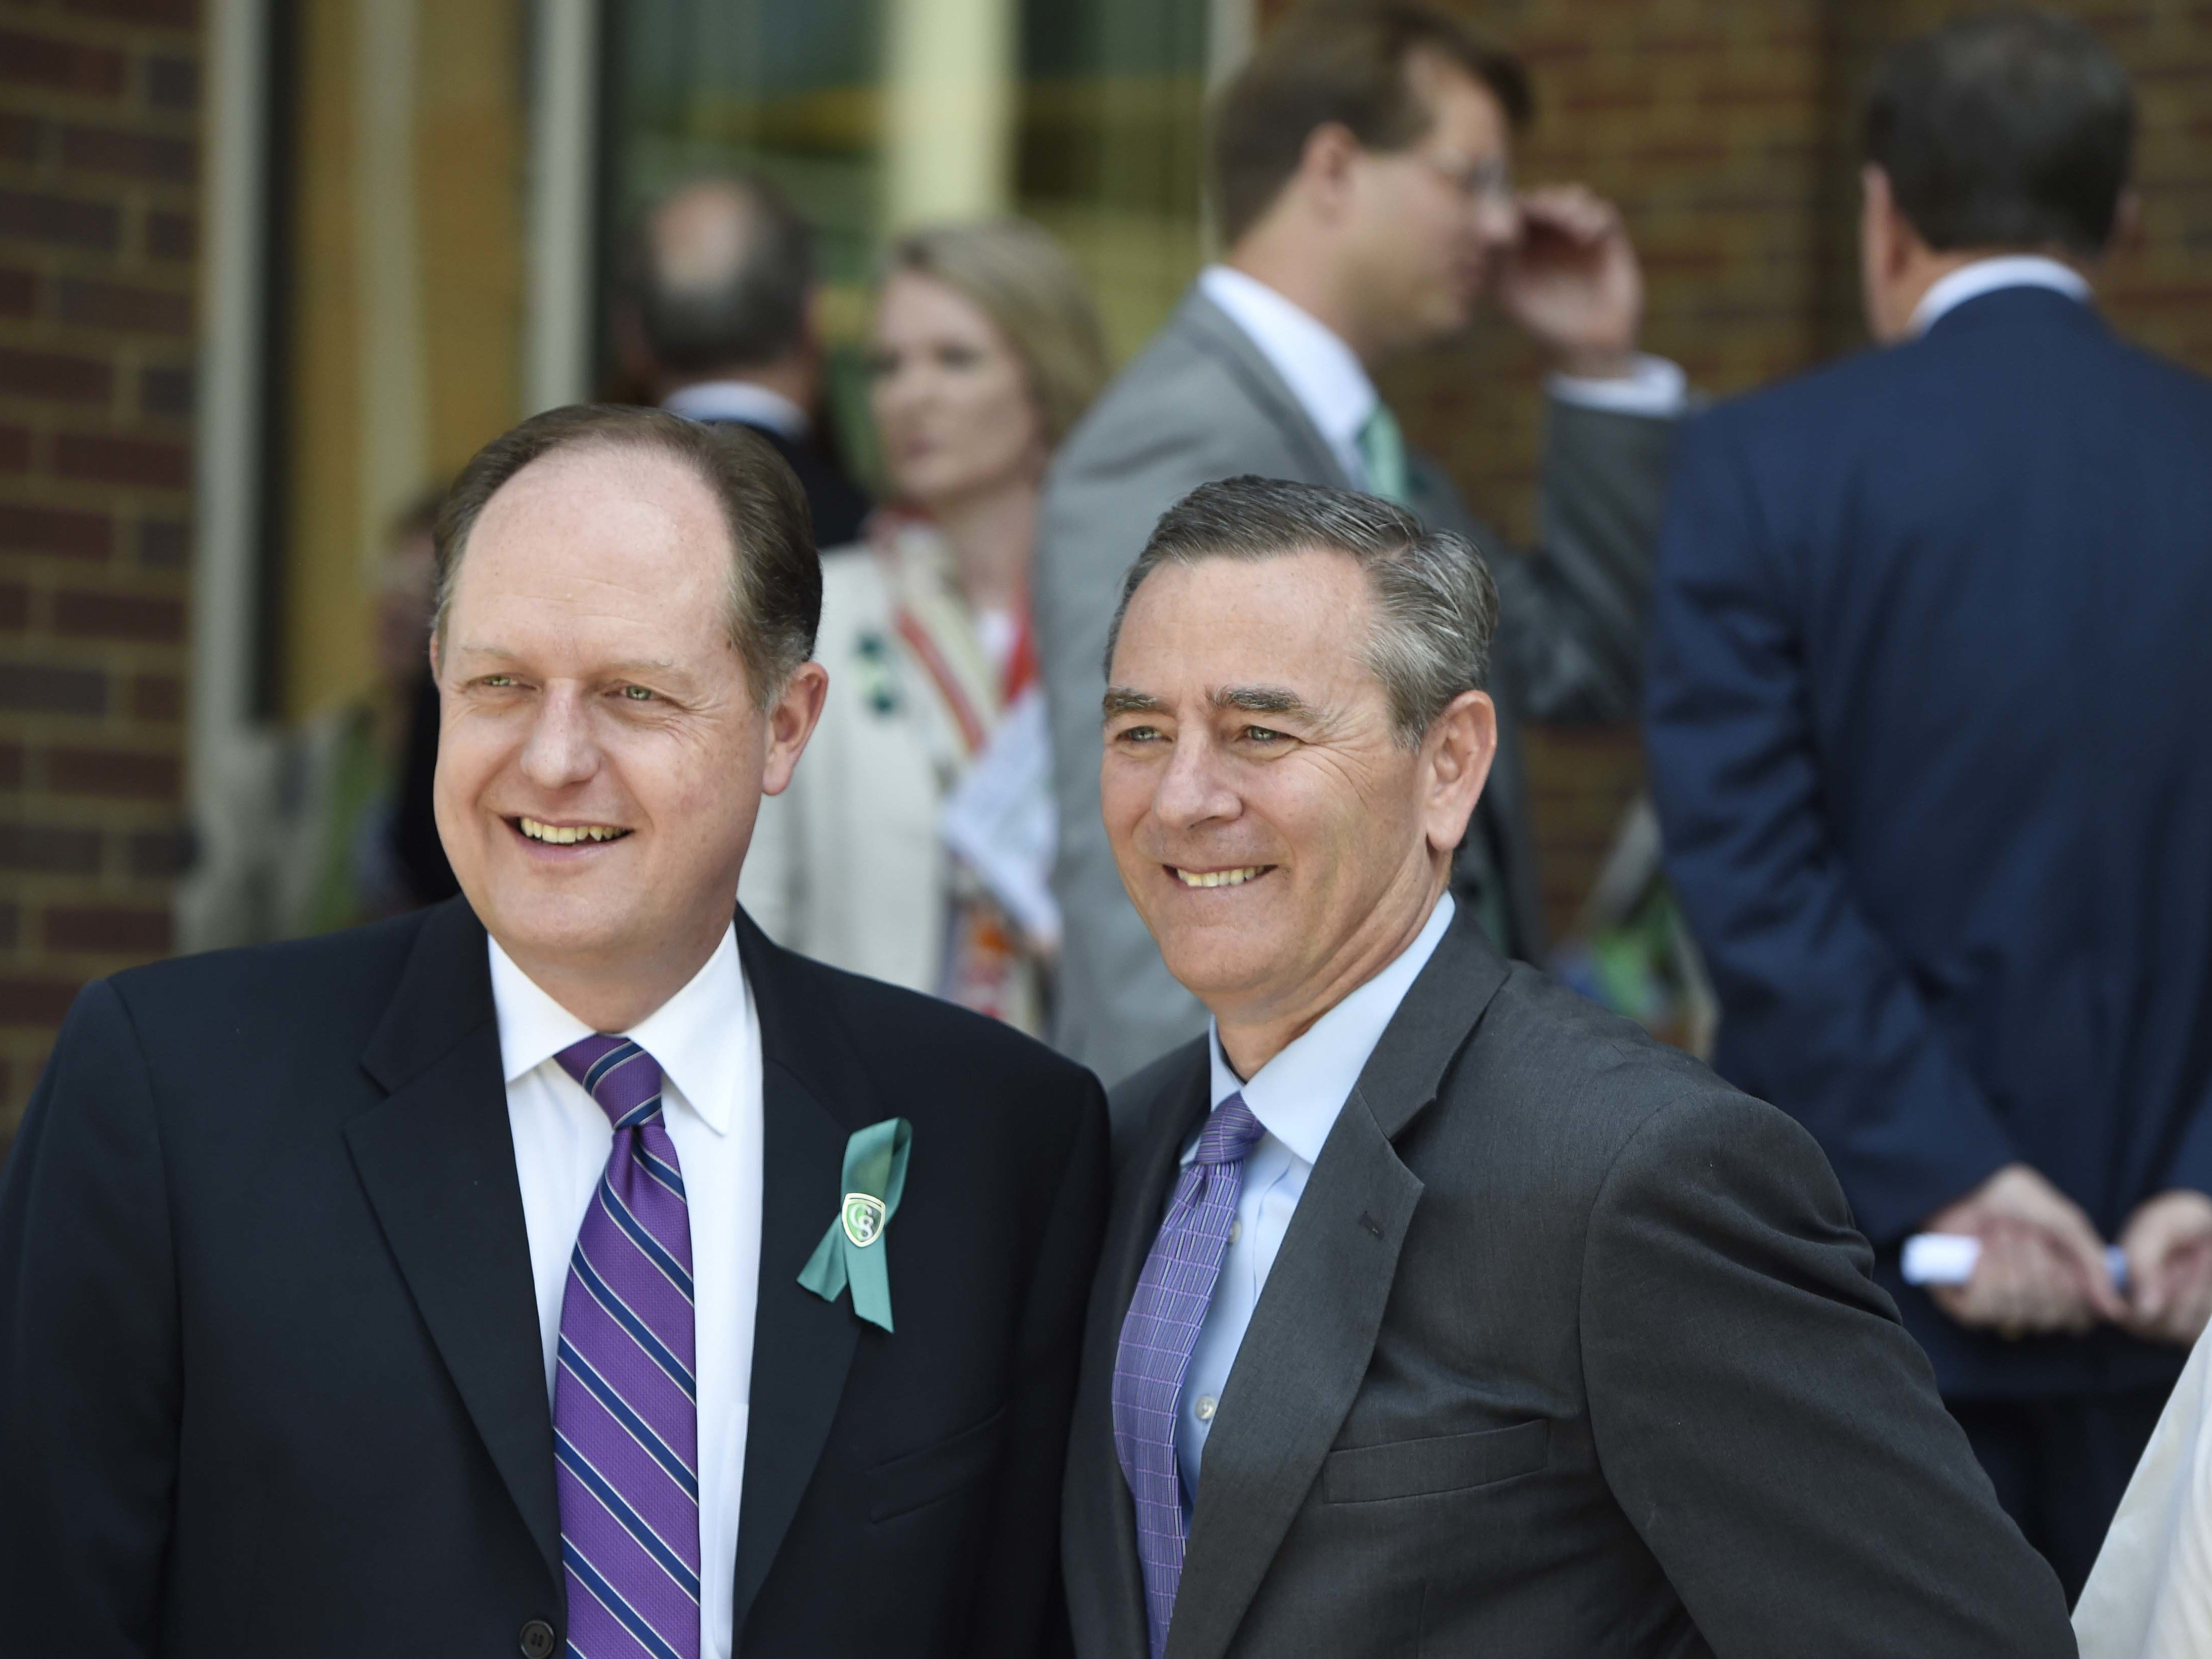 State Sen. Jack Johnson, left, and Rep. Glen Casada pose for a picture before the grand opening of Columbia State Community College's new Williamson campus June 22, 2016, in Franklin.